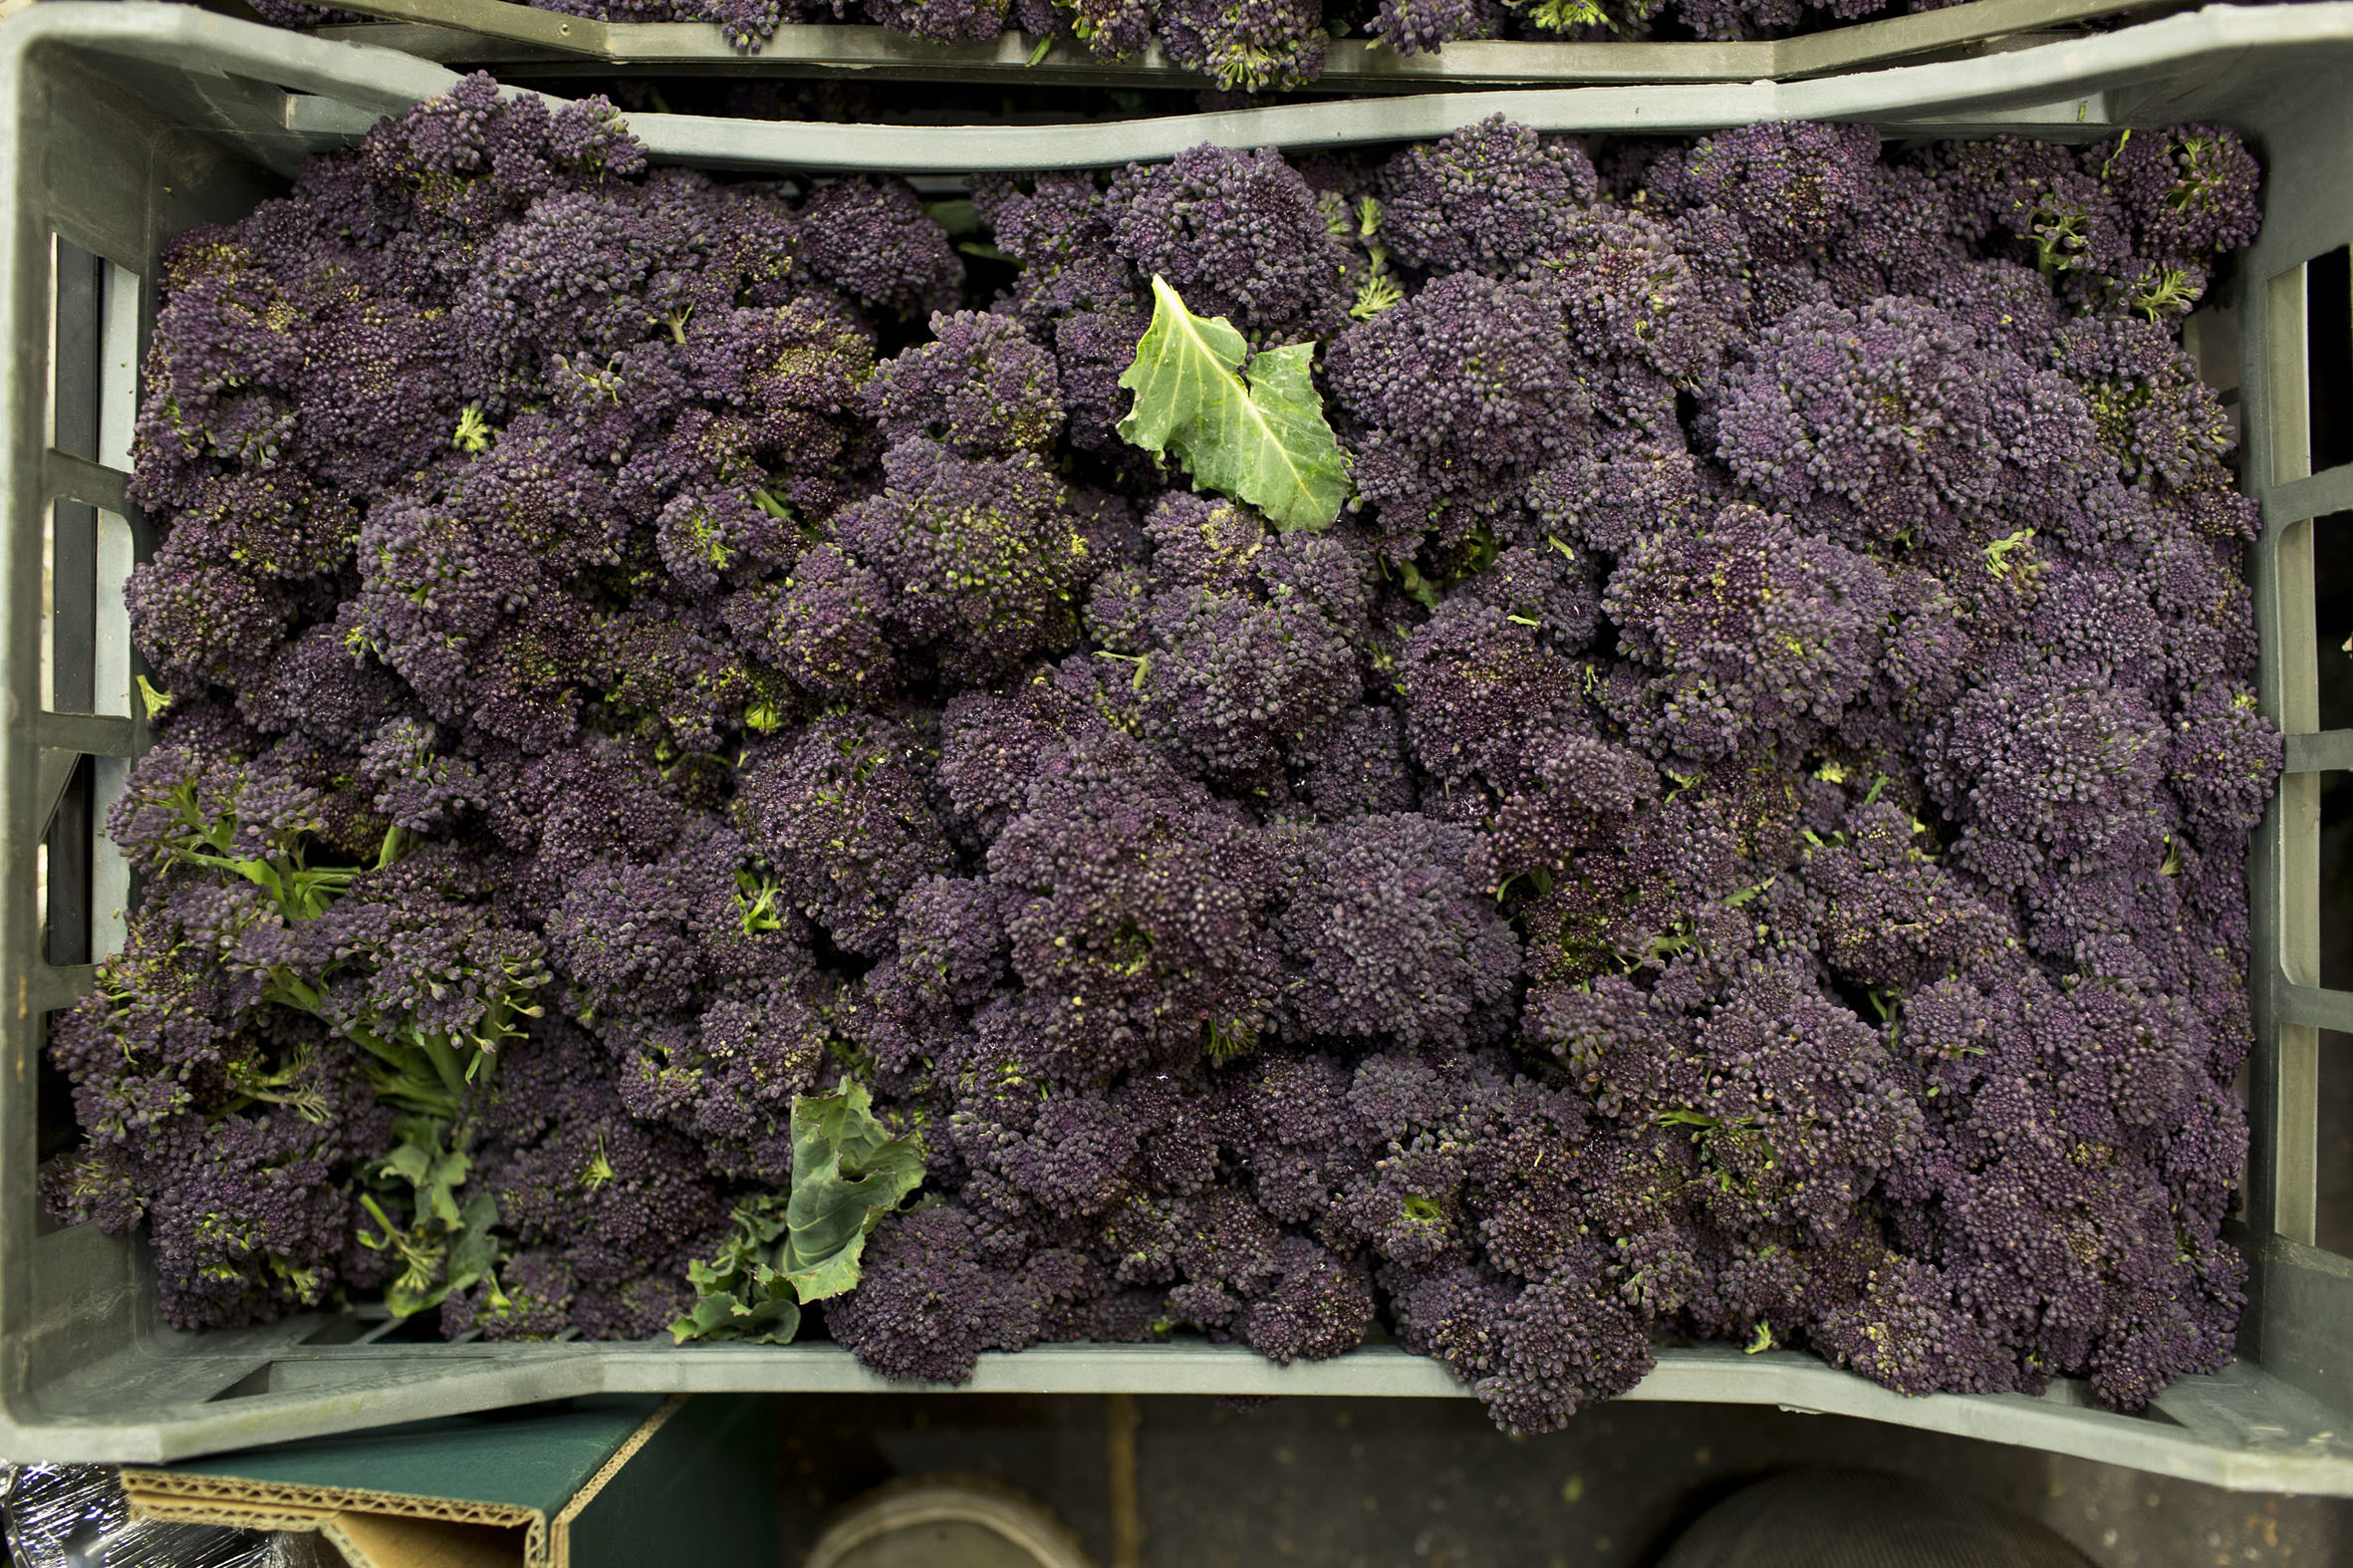 fruit-and-vegetable-market-report-march-2014-purple-sprouting.jpg?mtime=20170922112644#asset:11331